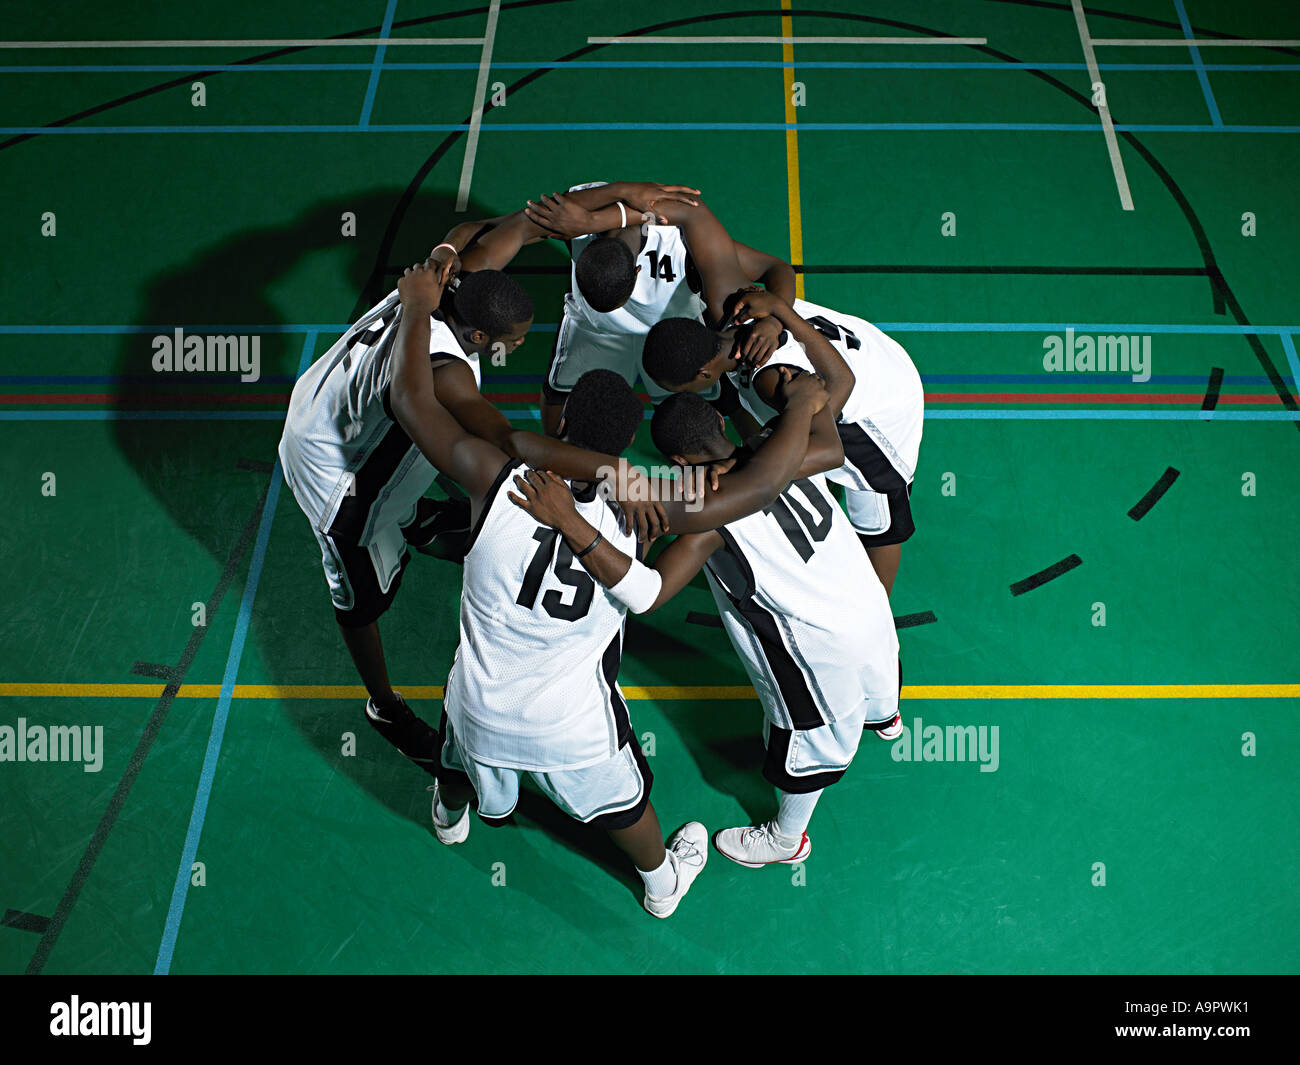 Basketball players huddling - Stock Image